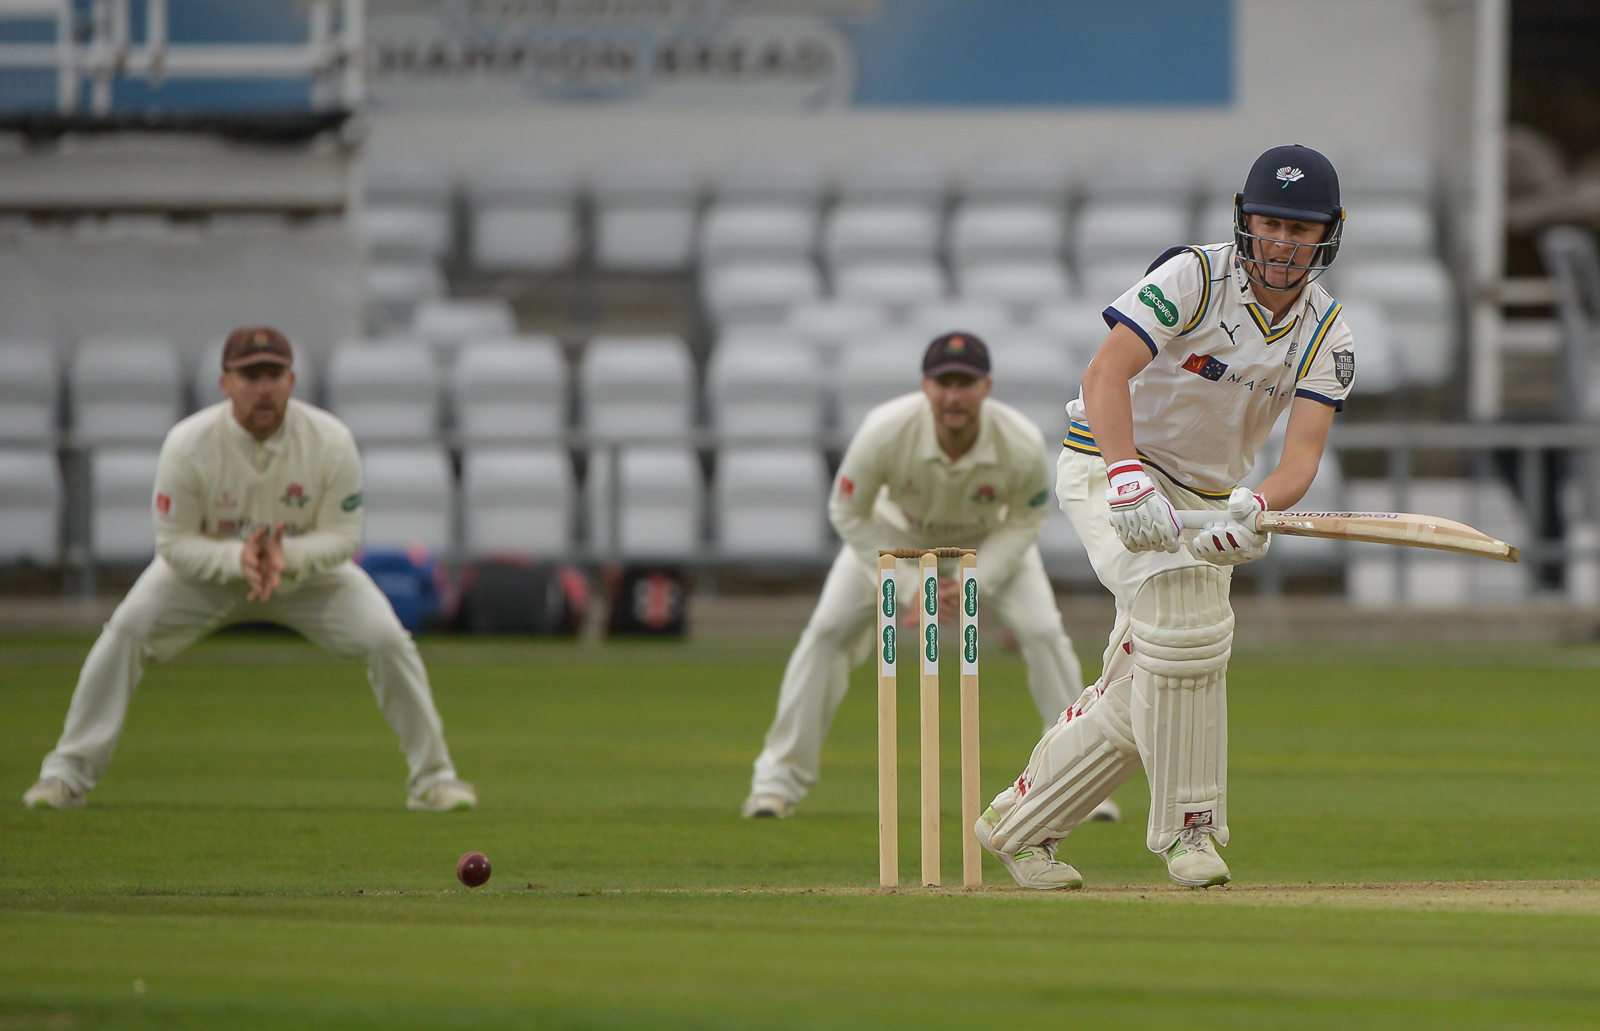 Batsman Gary Ballance will be key to Yorkshire's hopes this campaign. Picture: Ray Spencer